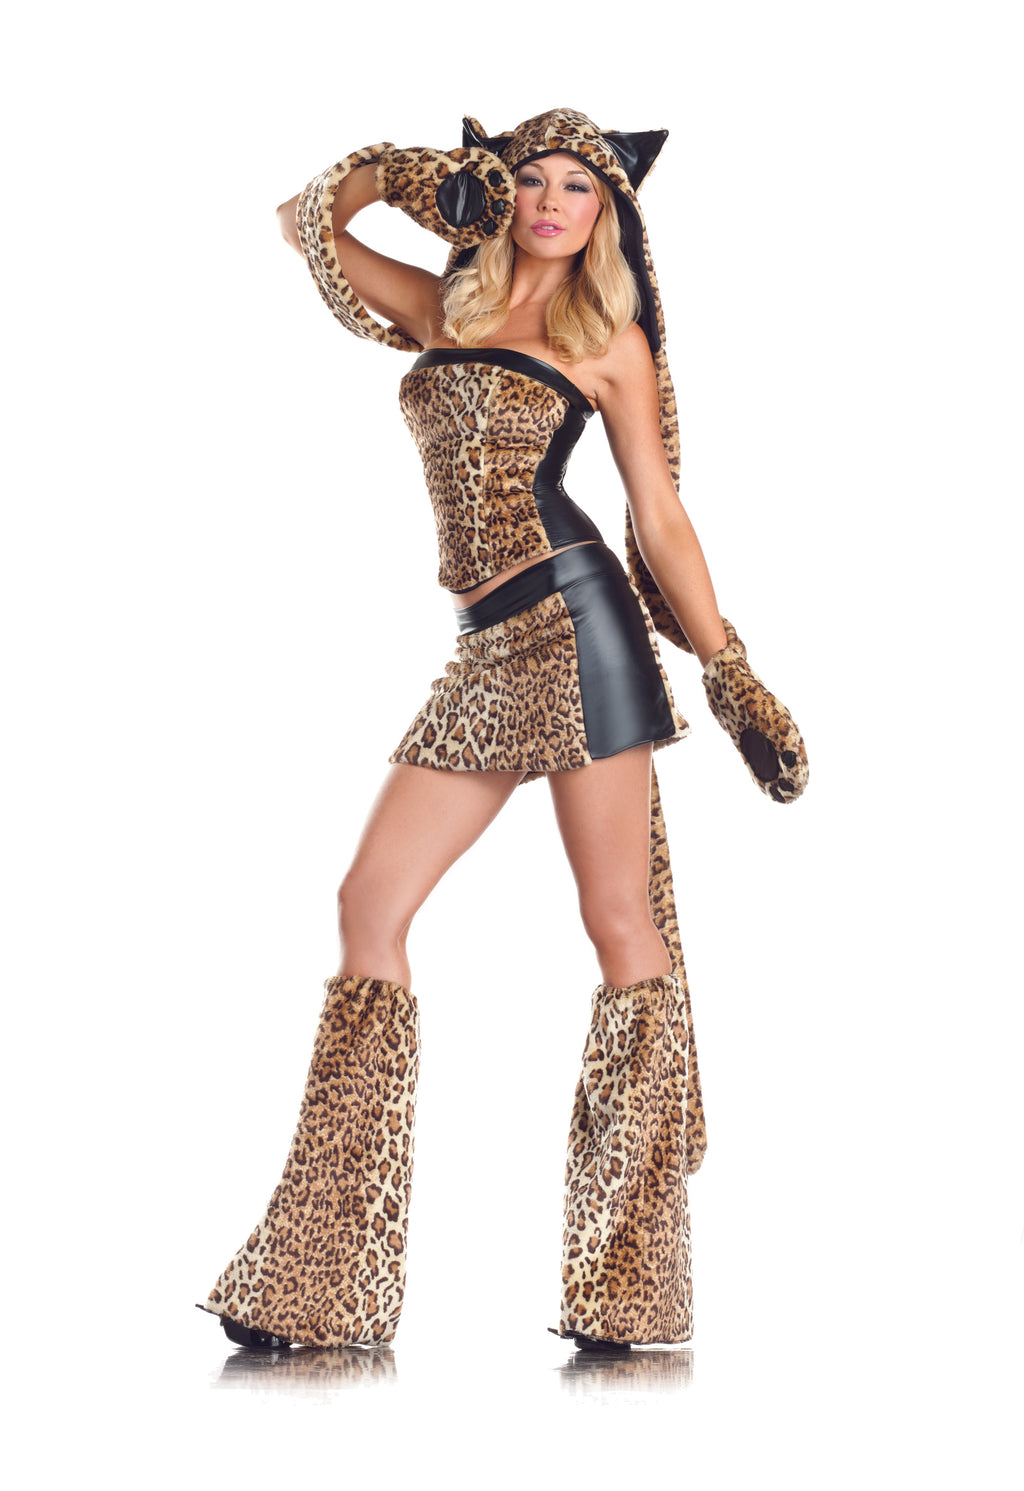 Adult-Women's-6-Piece-Sexy-Leopard-Halloween-Party-Costume-With-Hood-&-Leg-Warmers